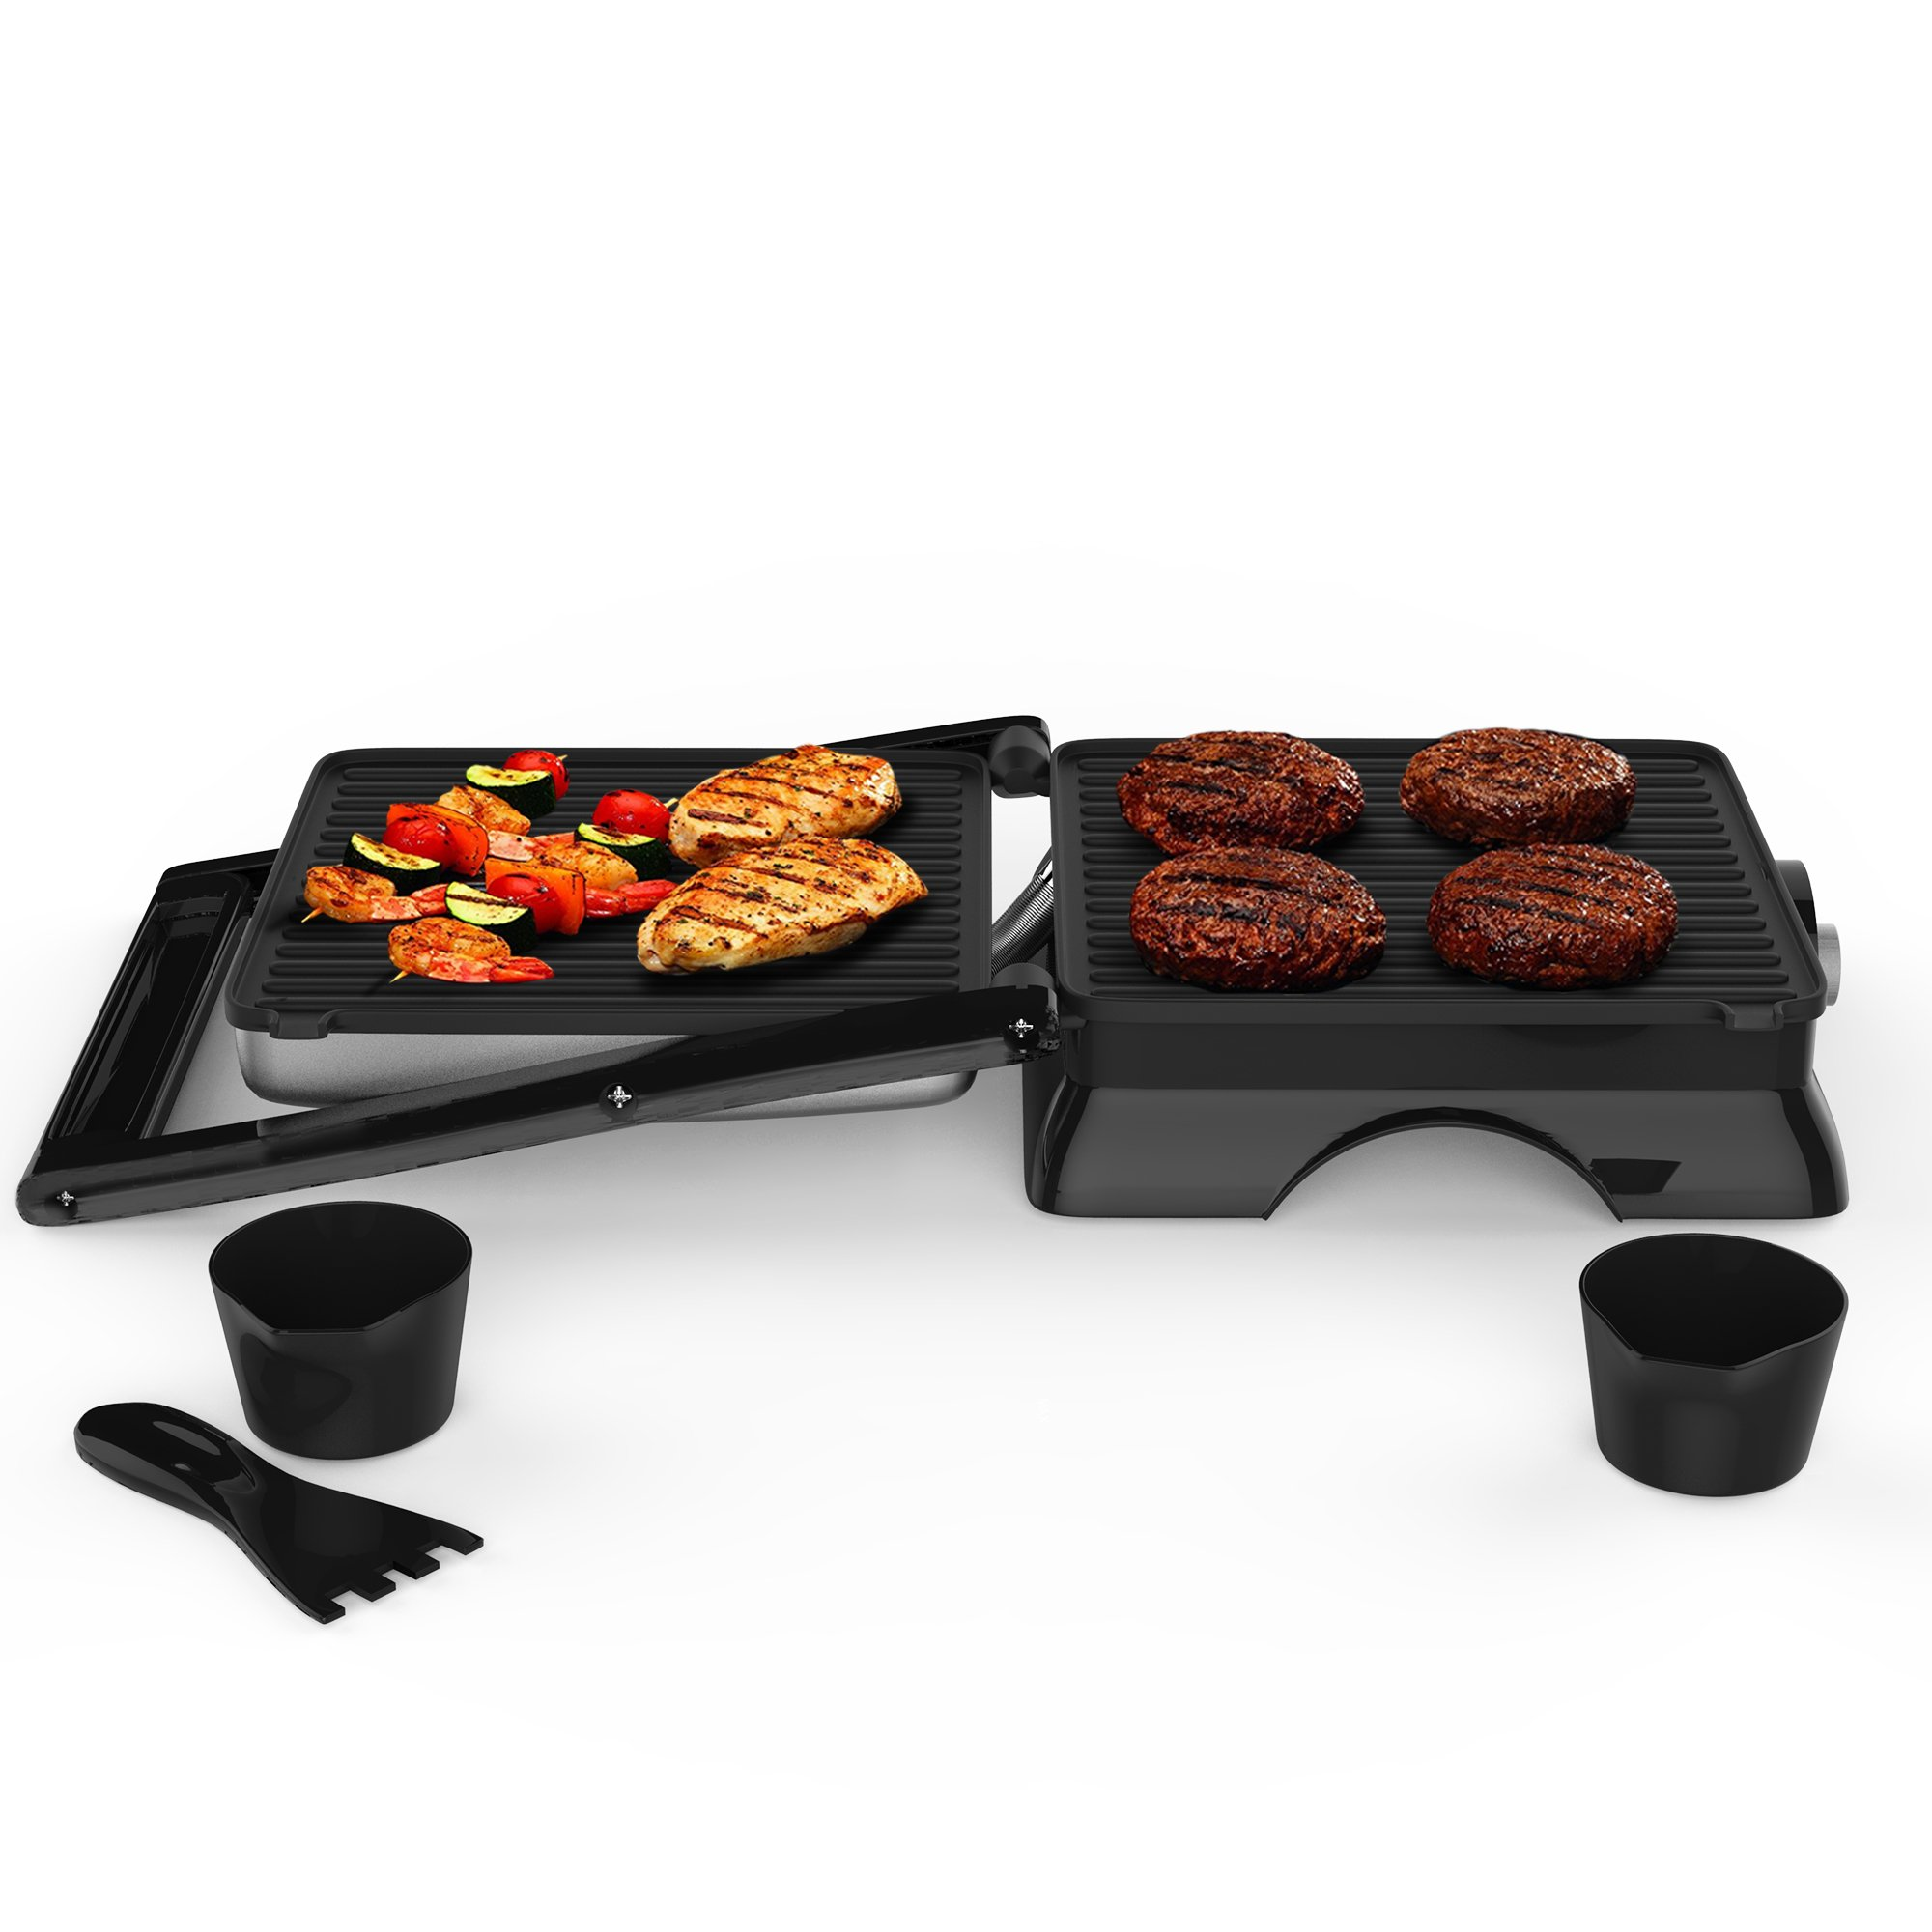 Panini Press Indoor Grill and Gourmet Sandwich Maker, Electric with Nonstick Plates by Chef Buddy